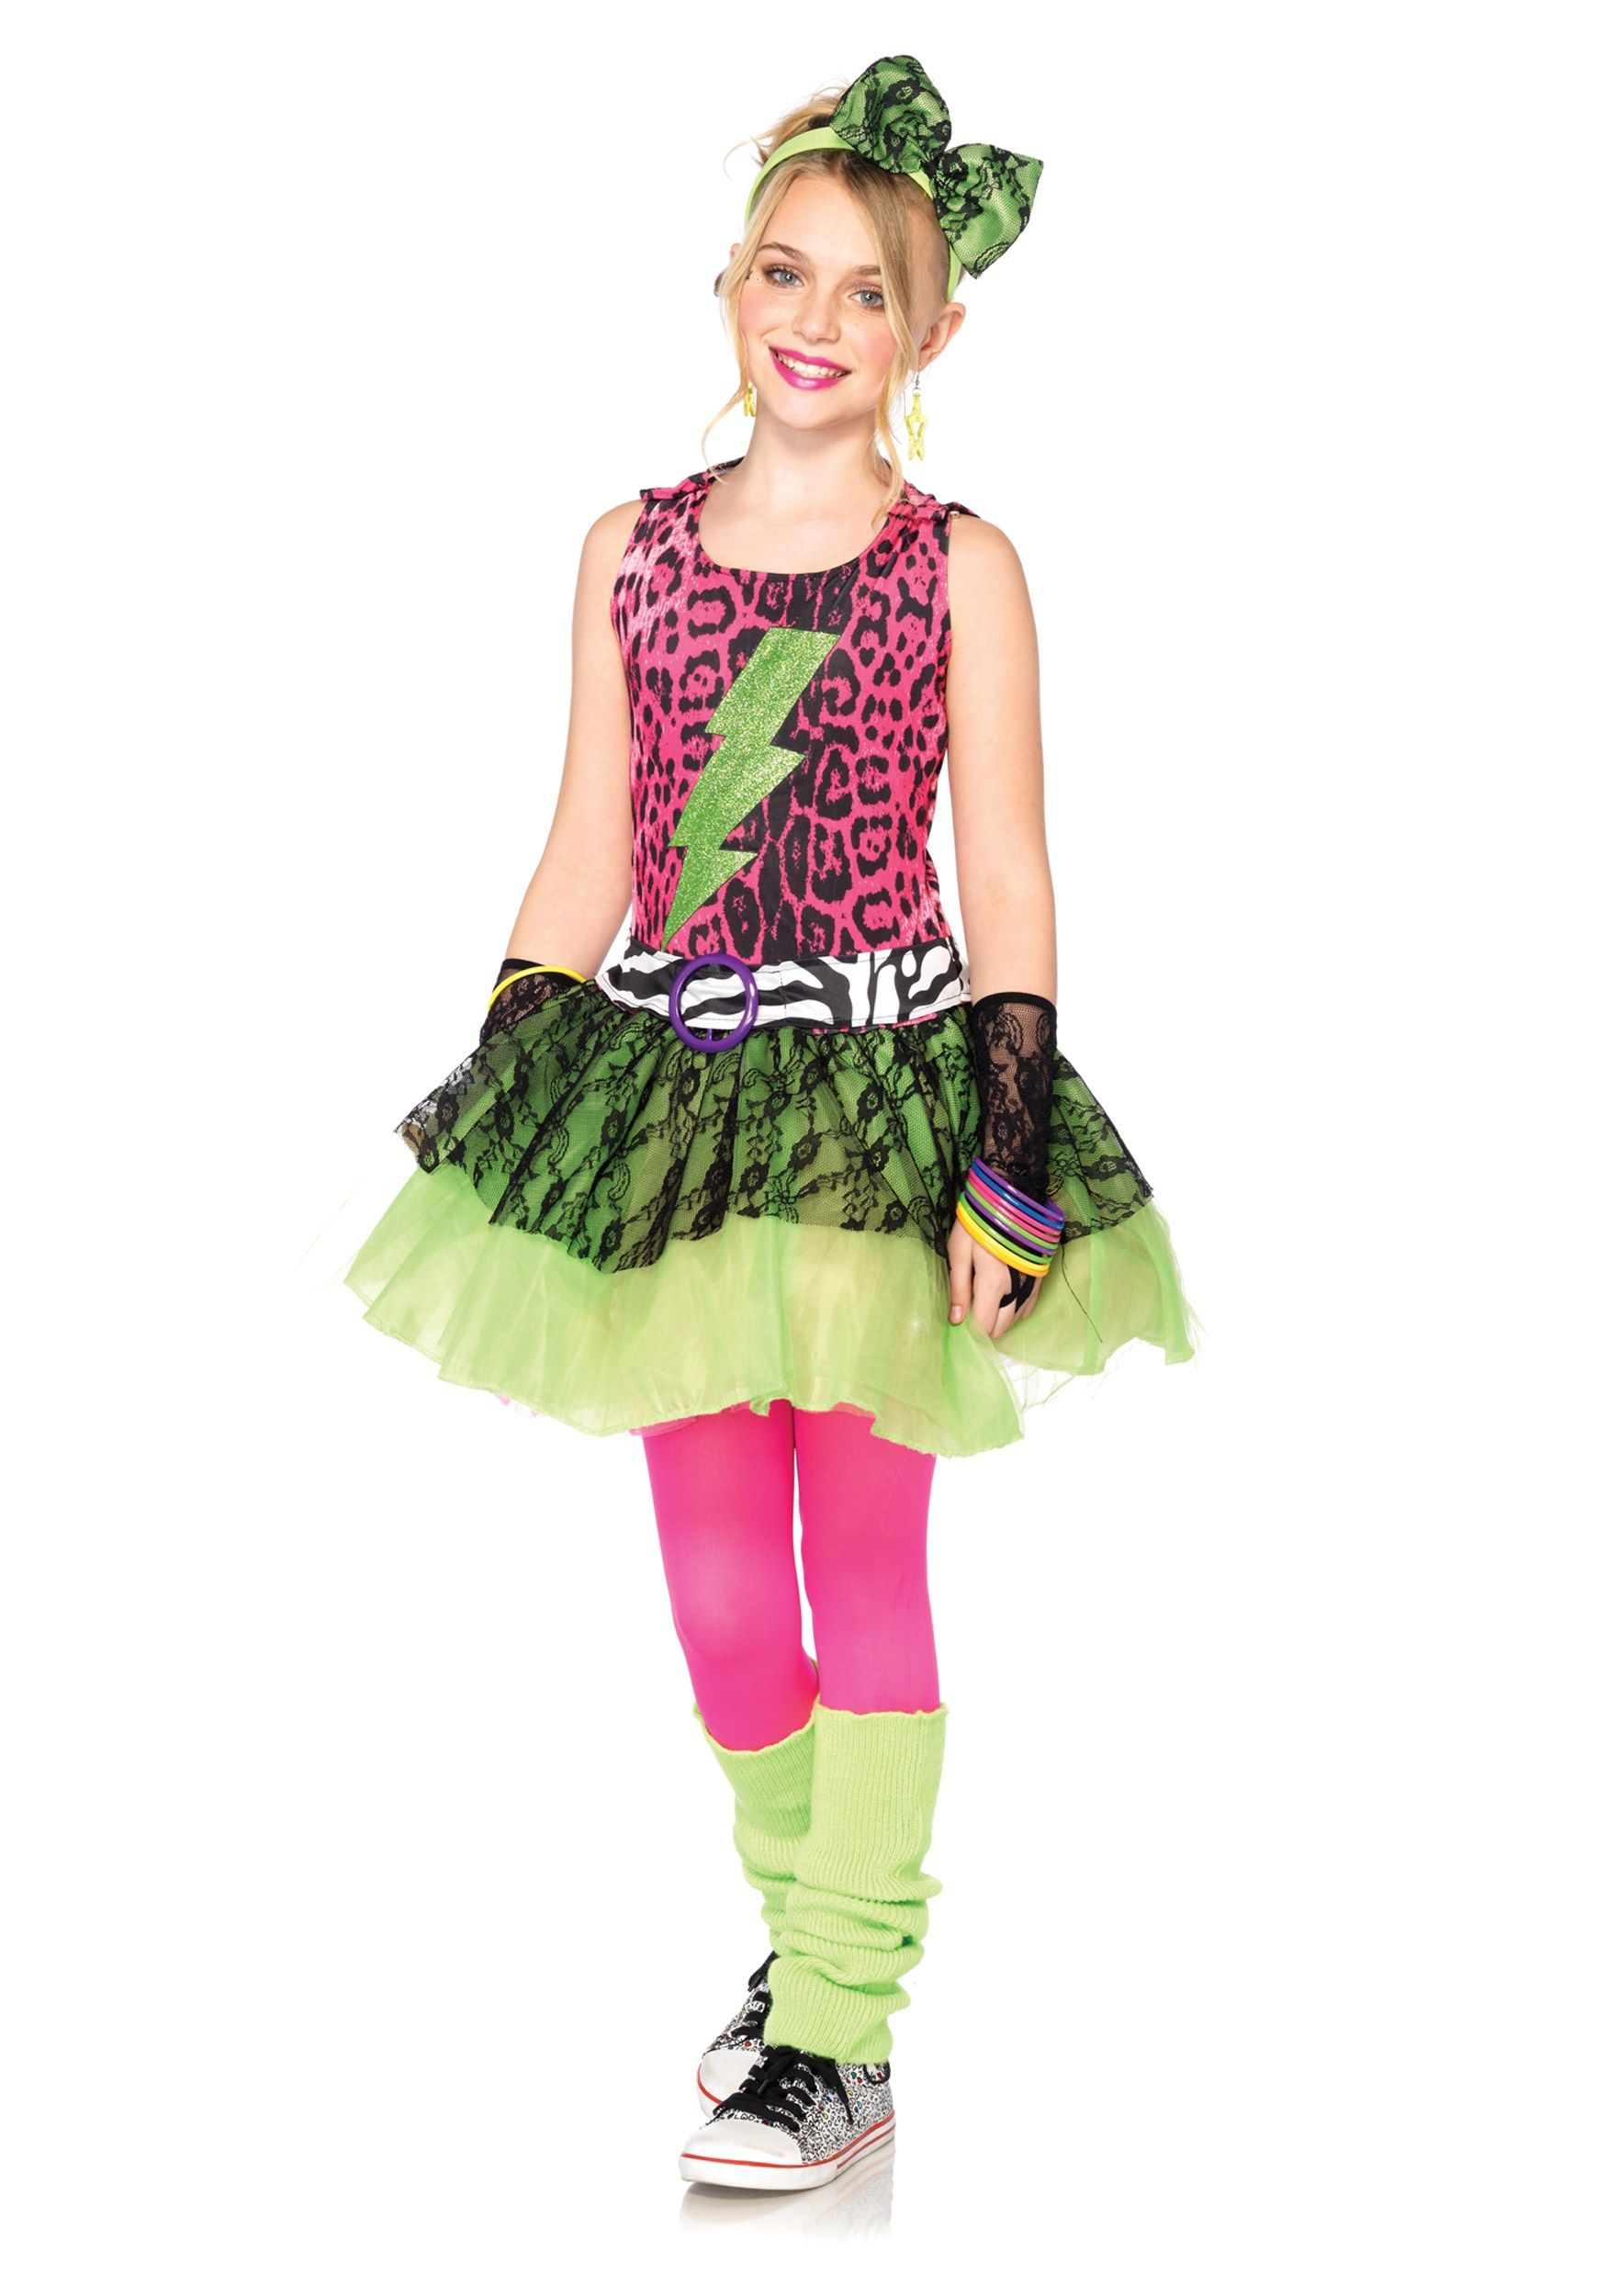 ideas for a 1980's halloween costume for girl Google